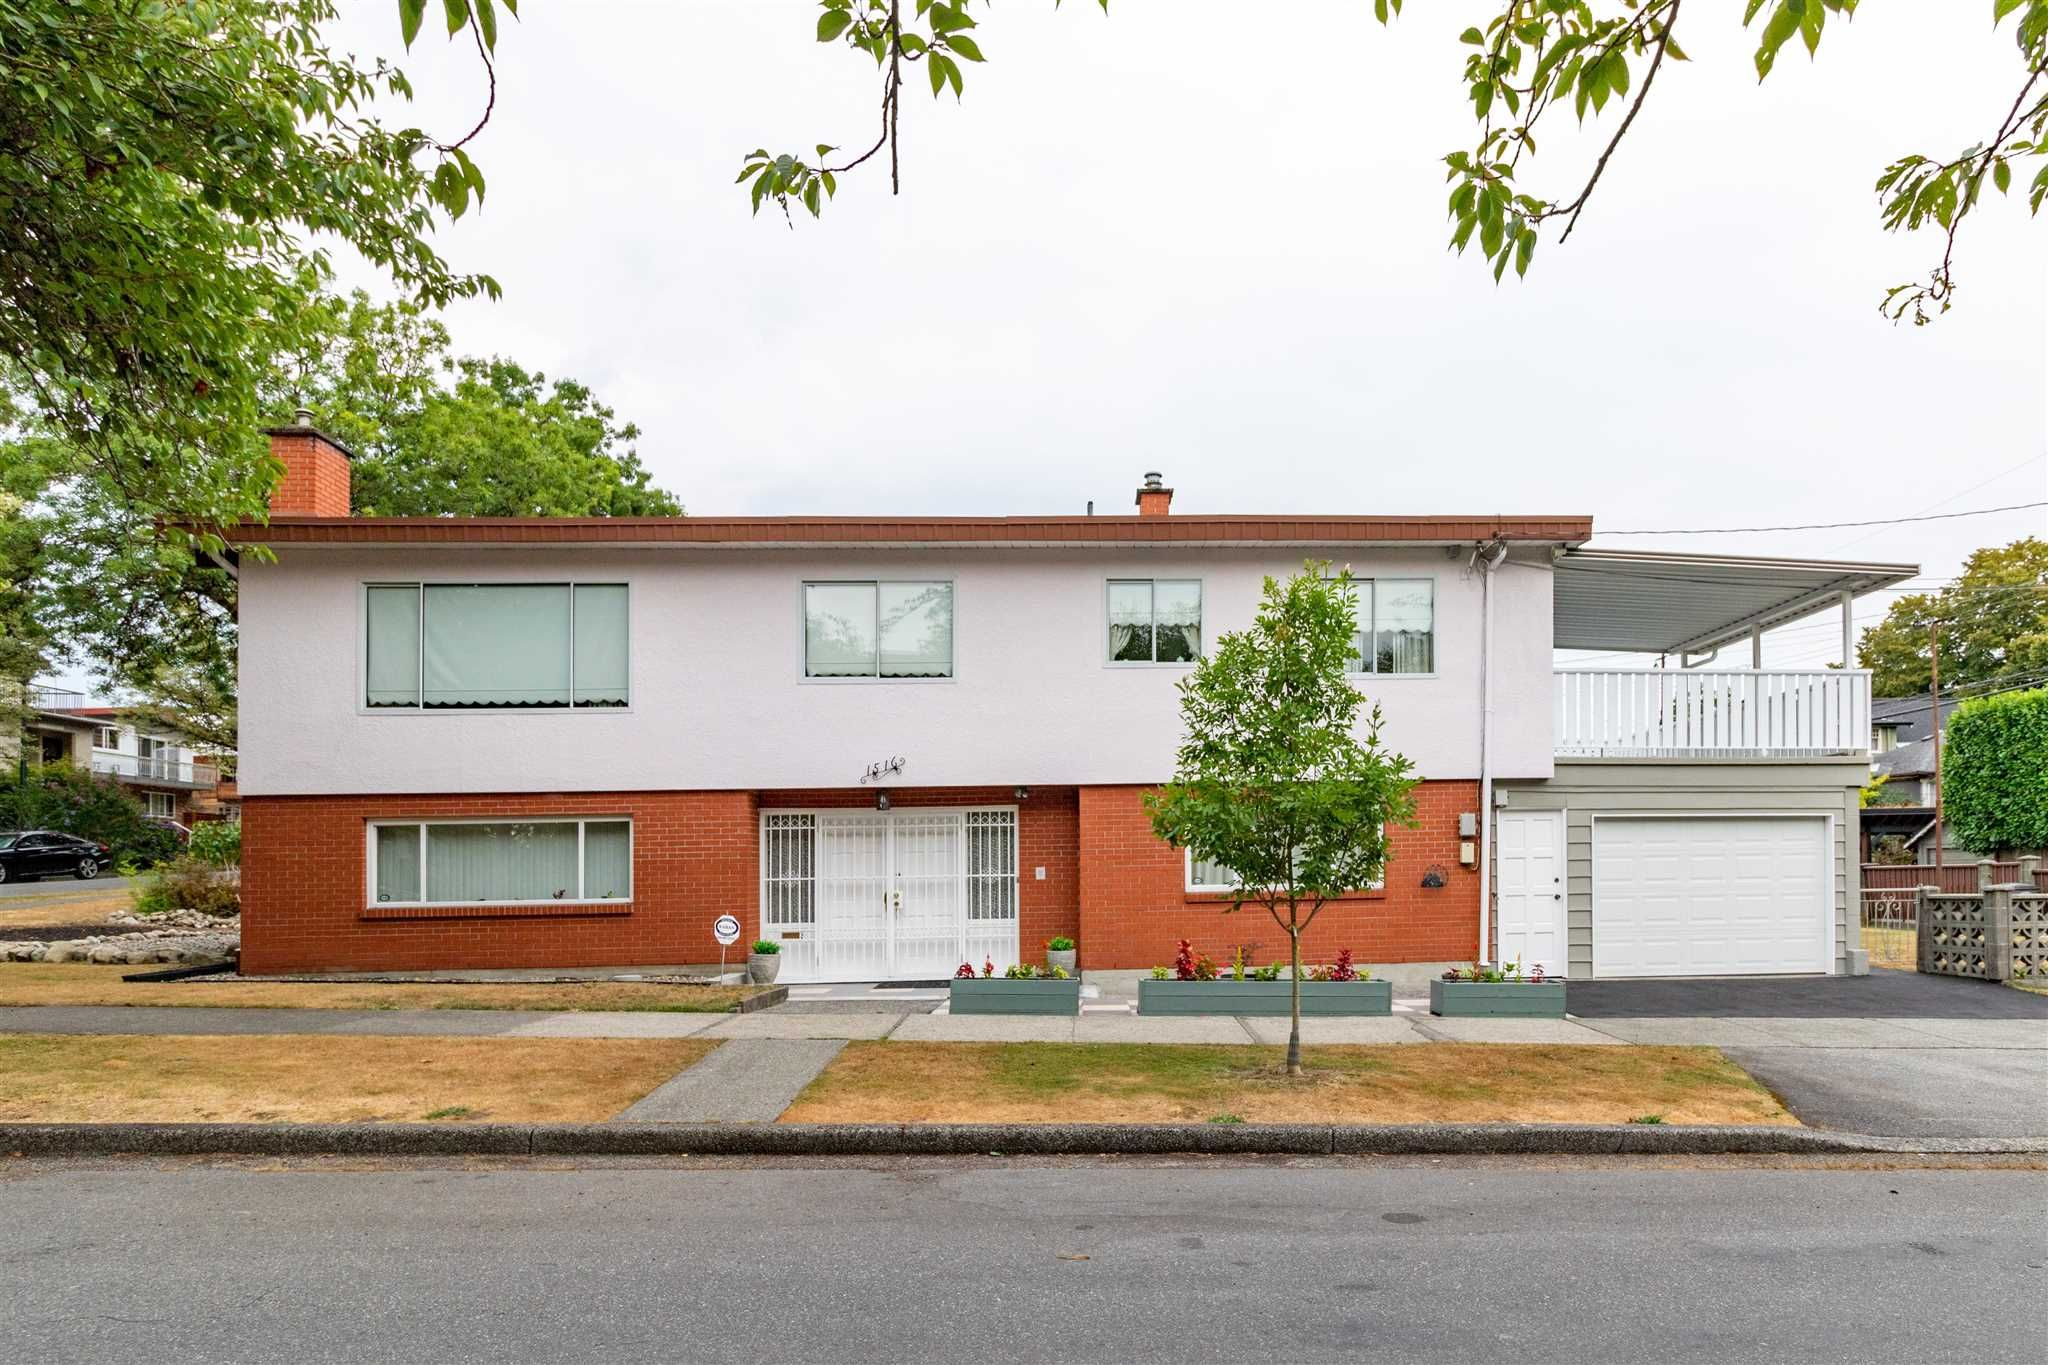 Main Photo: 1516 SEMLIN Drive in Vancouver: Grandview Woodland House for sale (Vancouver East)  : MLS®# R2607064